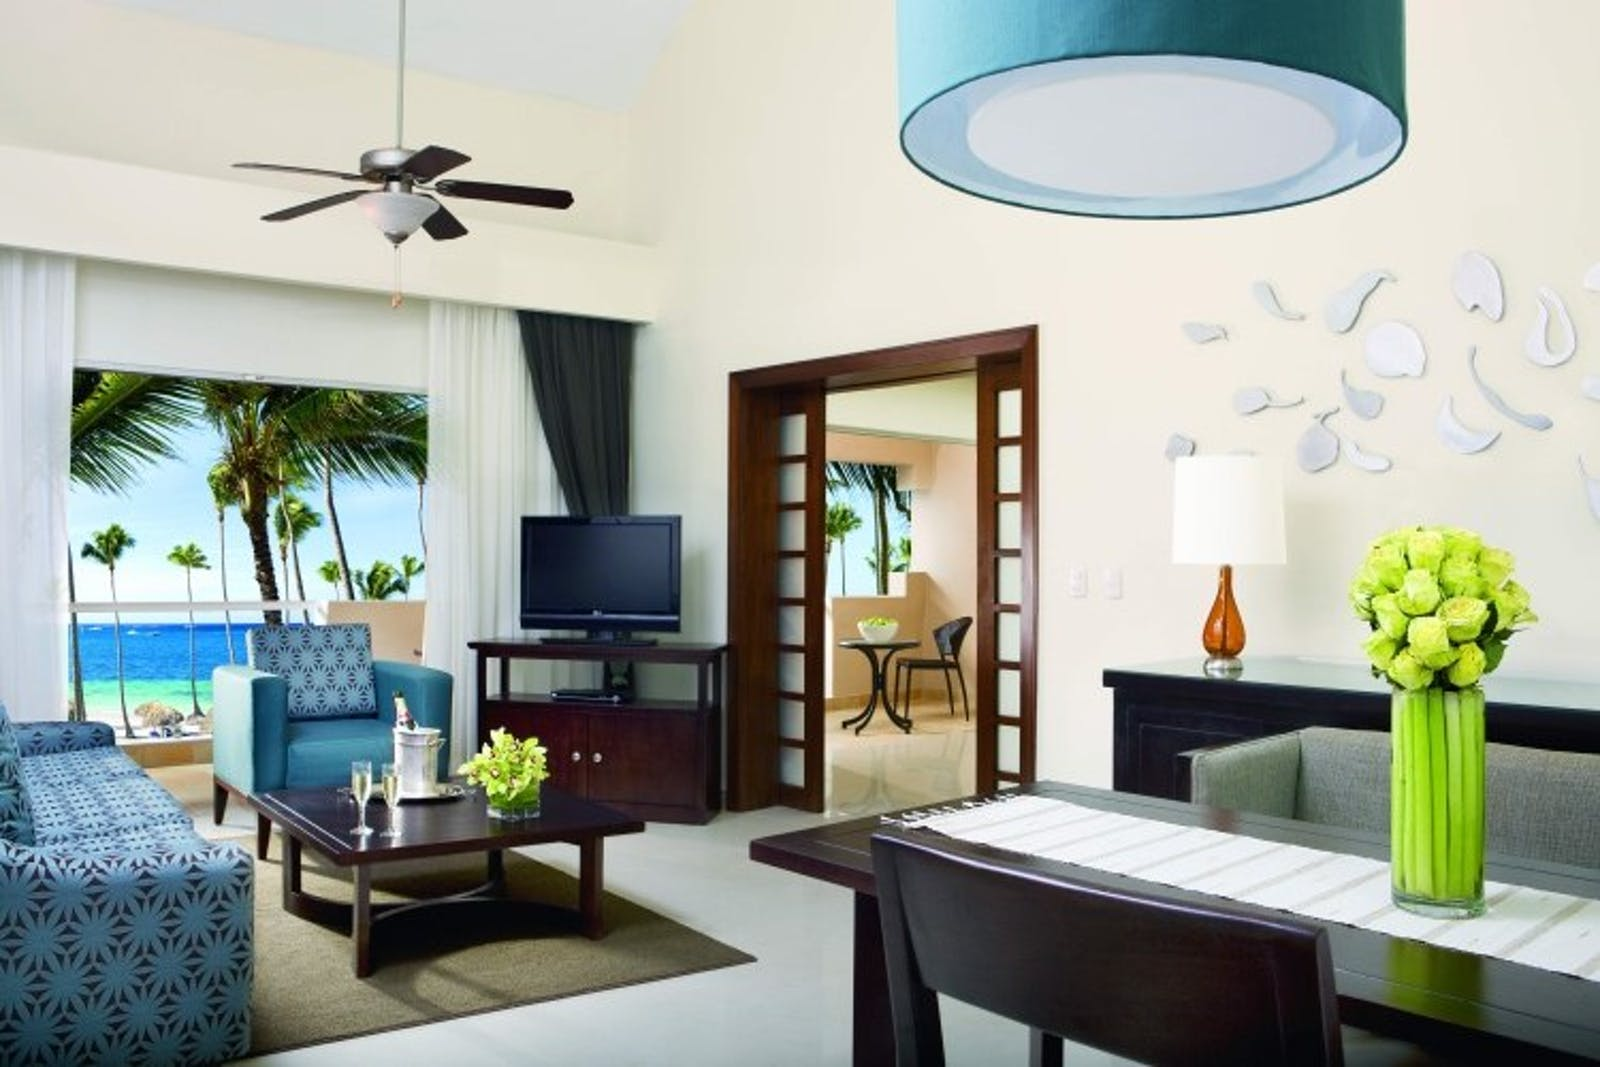 Master Suite at Dreams Palm Beach Punta Cana, Dominican Republic